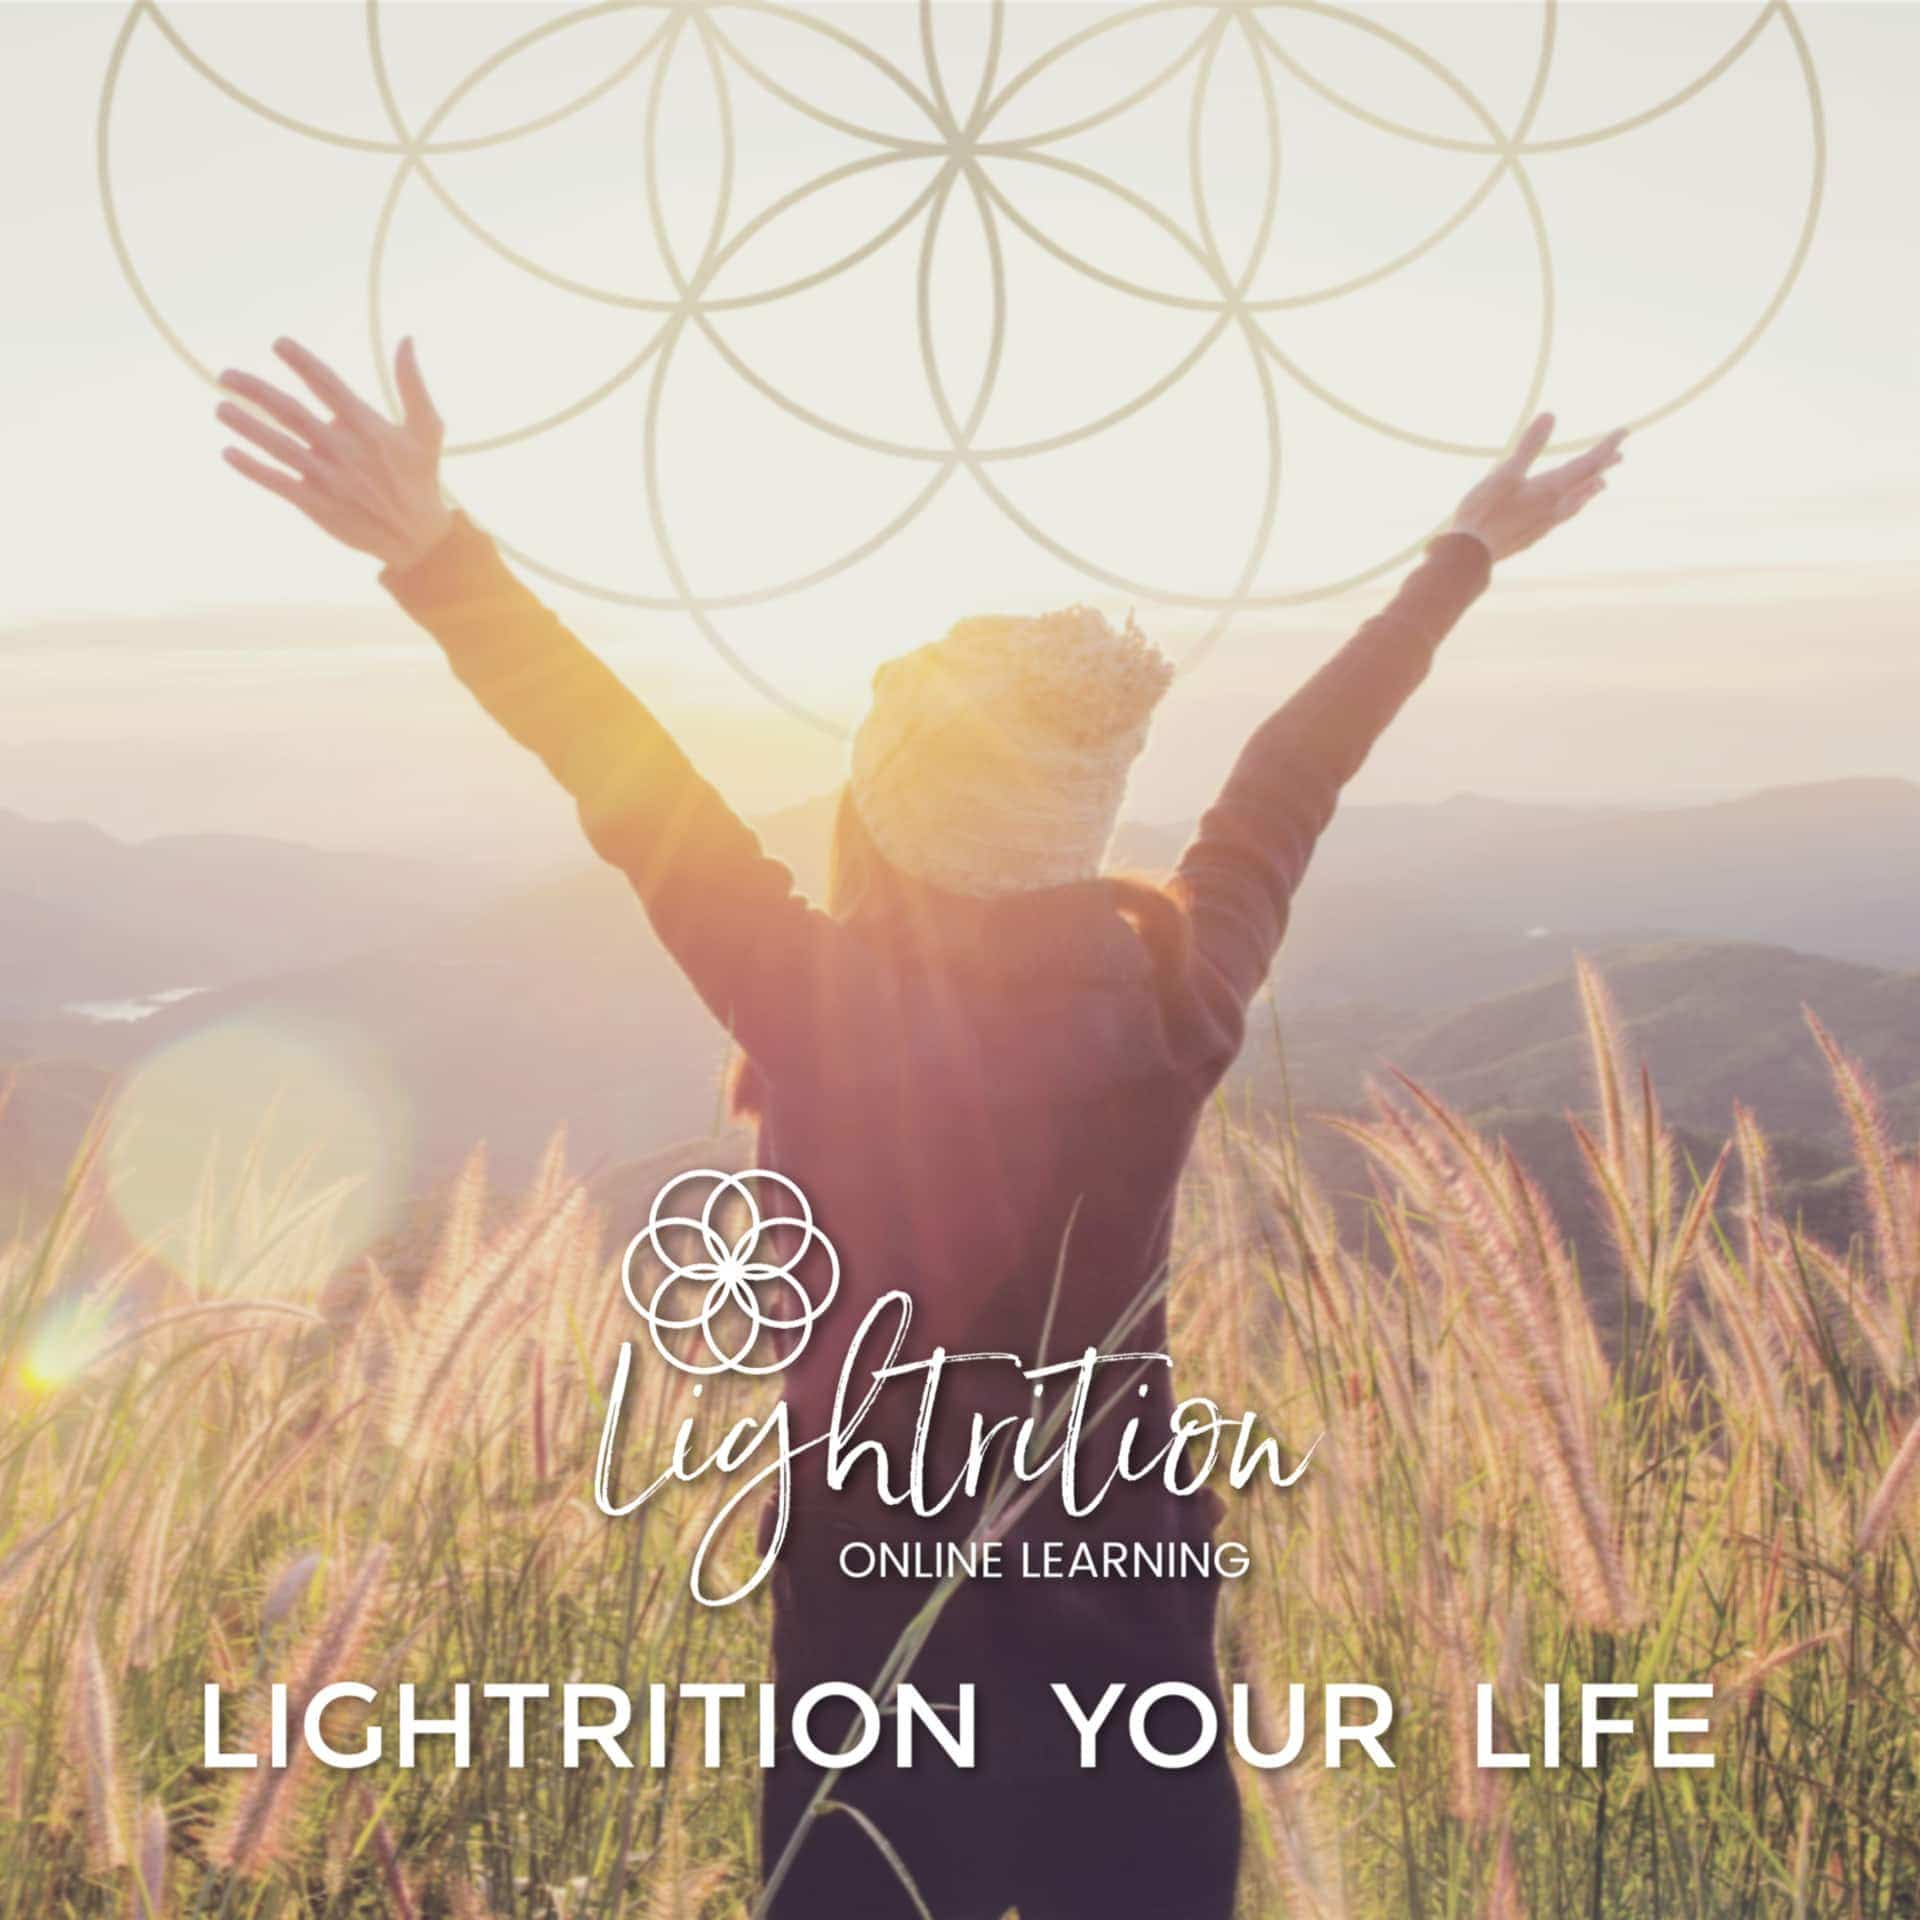 Lightrition your Life